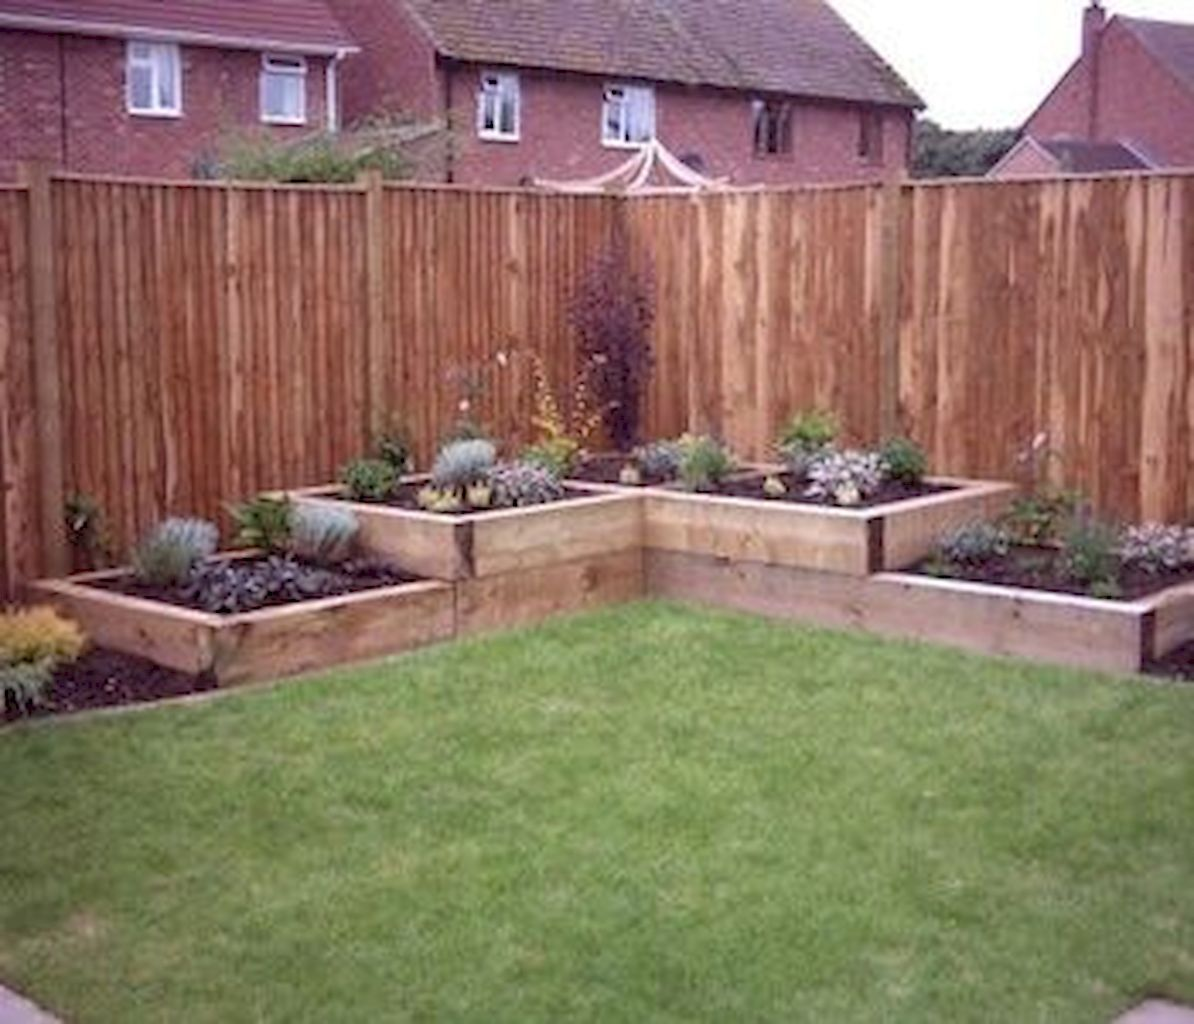 40 beautiful backyard landscaping ideas on a budget for Back garden landscaping ideas